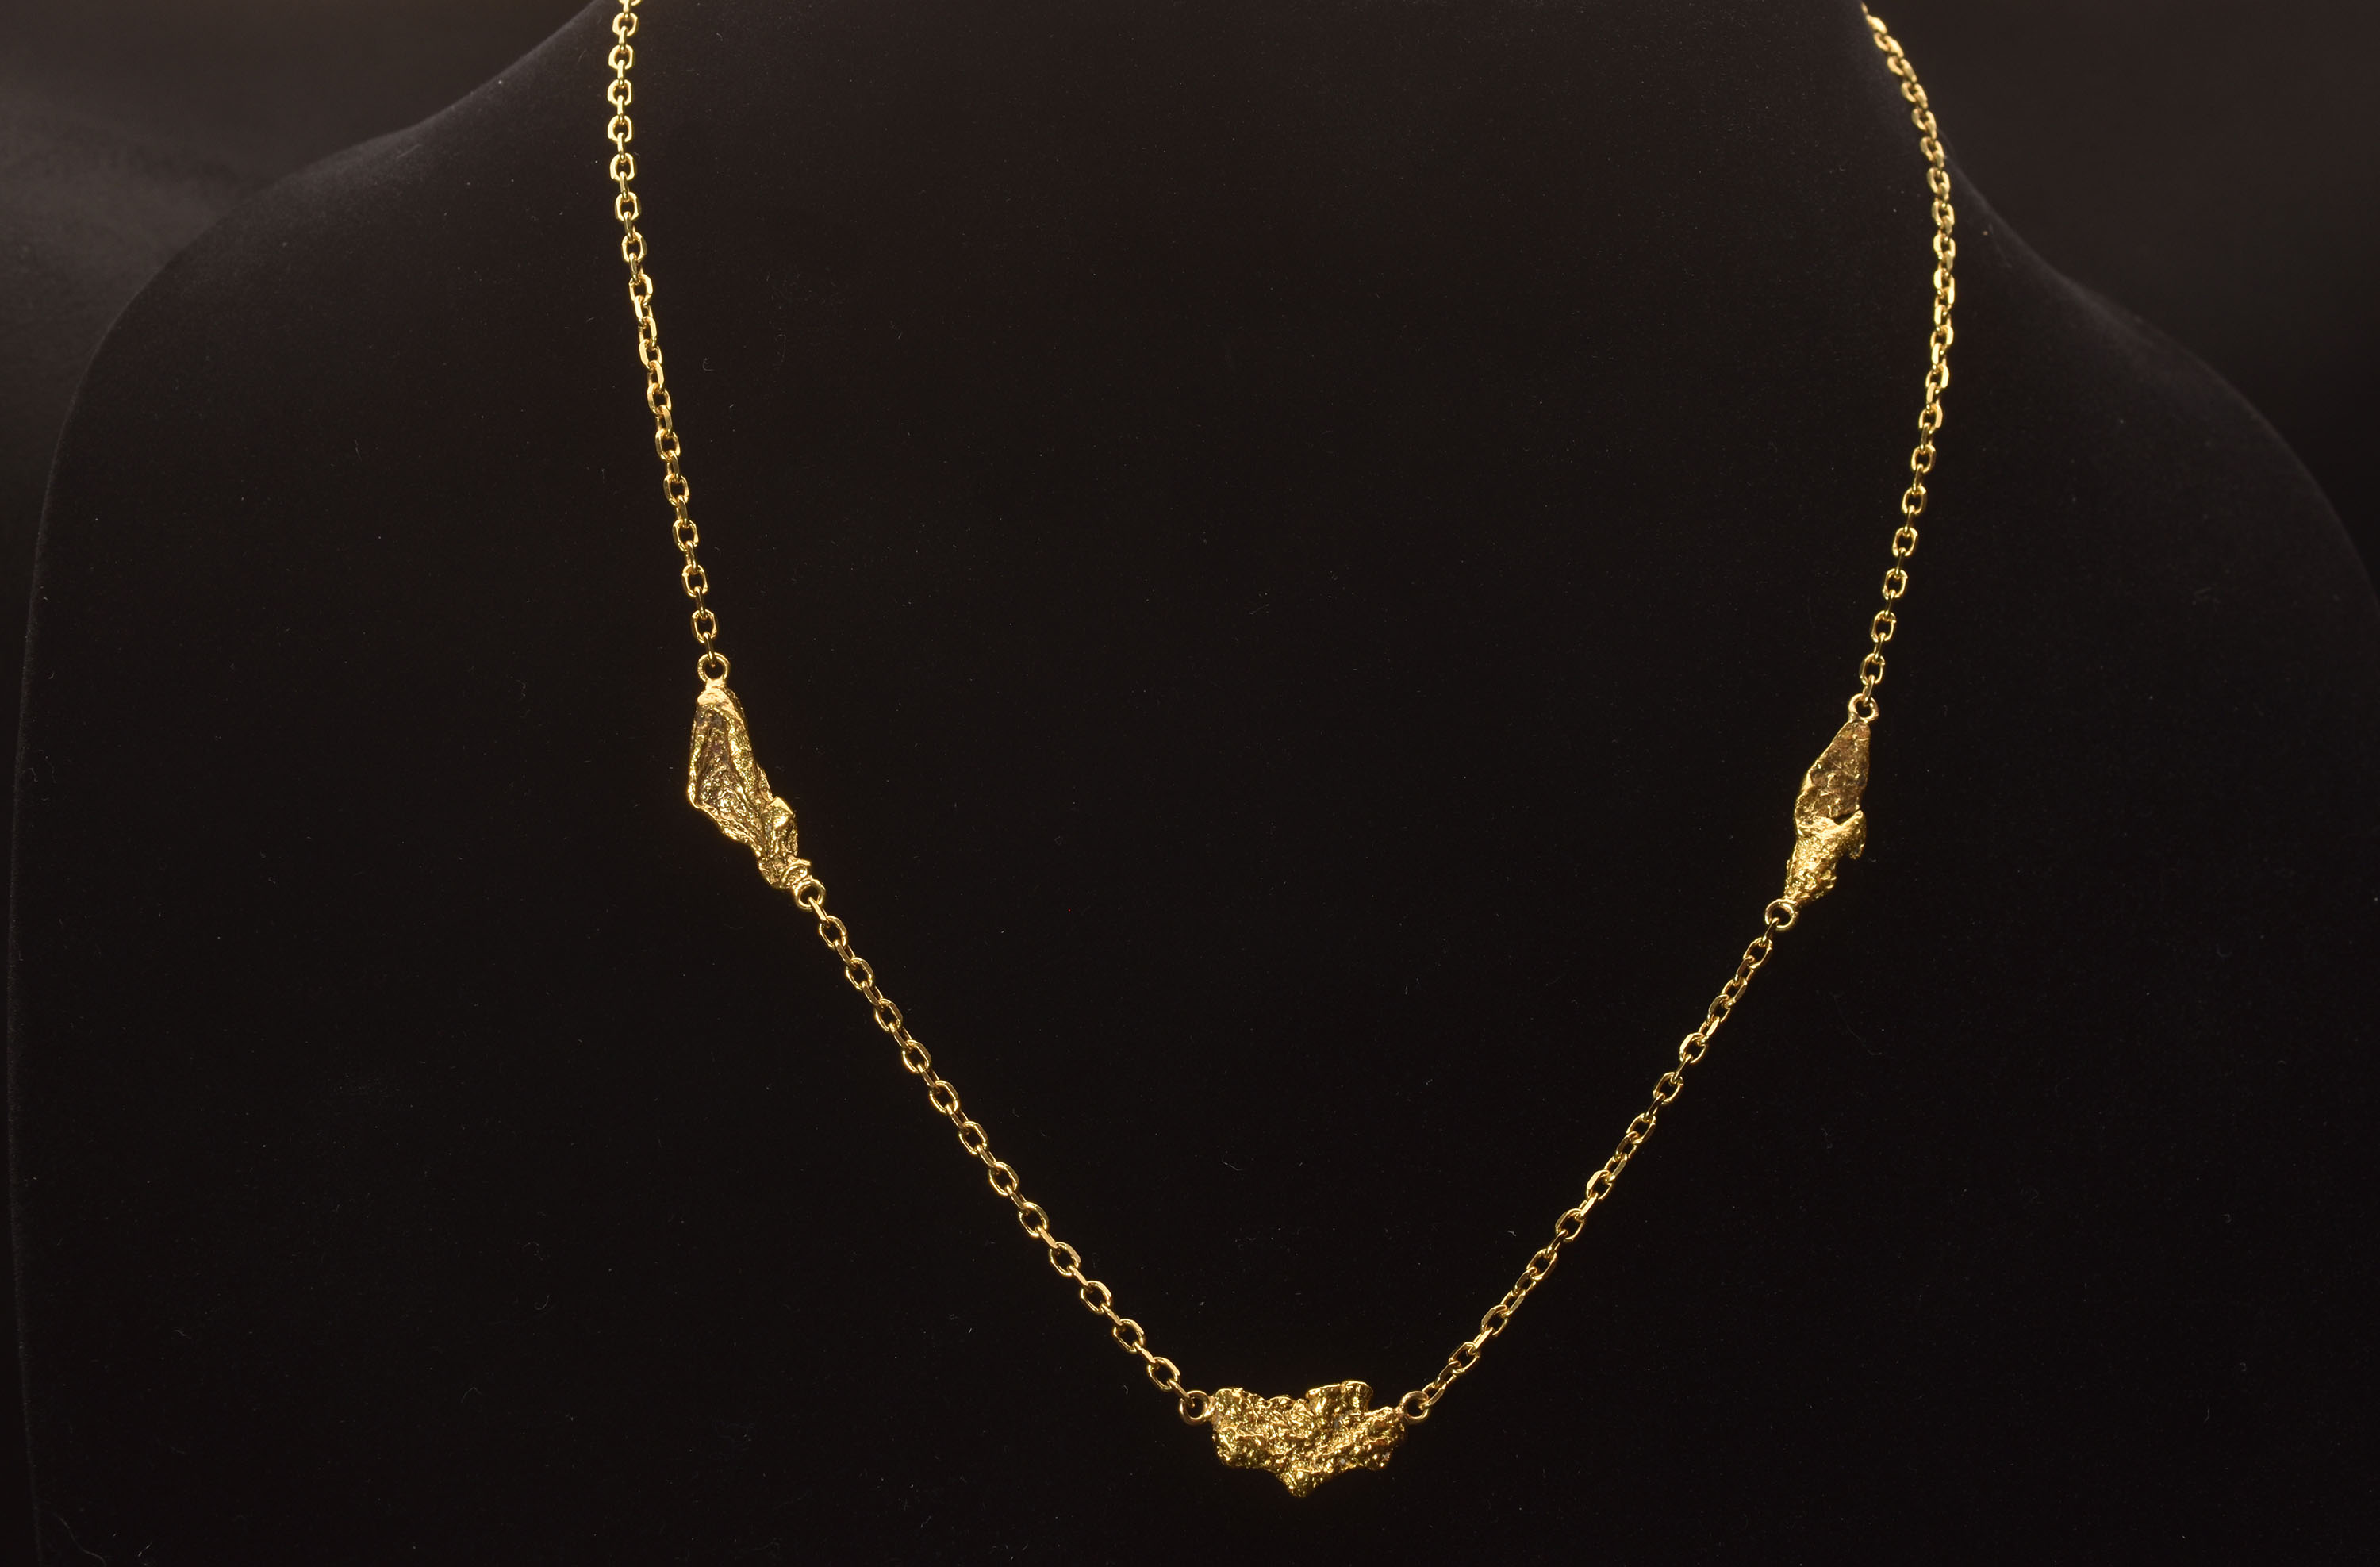 Brilliant Three Alaska Gold Nugget Necklace